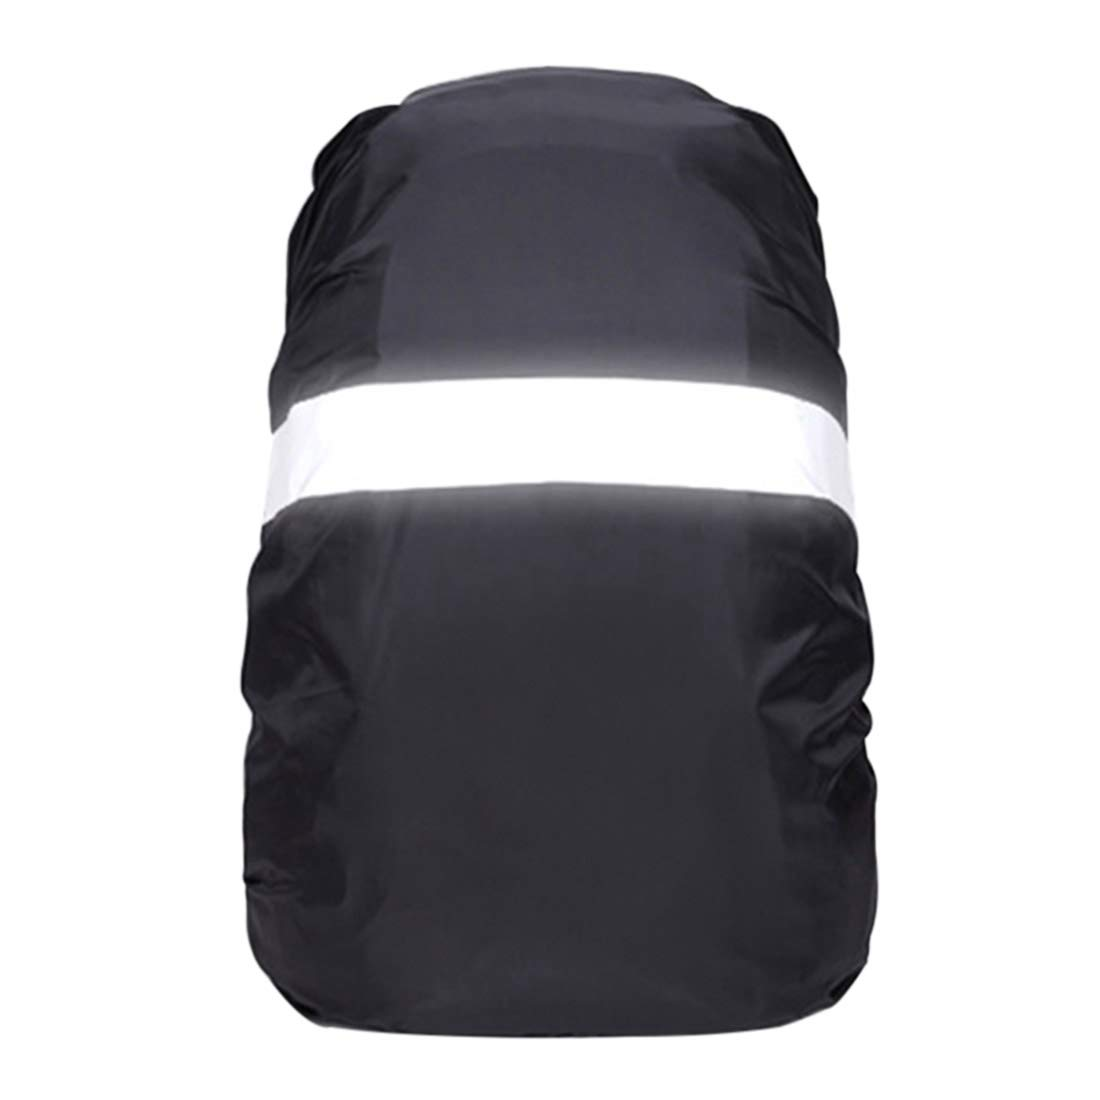 Xianheng Reflective Backpack Rain Cover Waterproof Bag Rain Cover for Outdoor Travel Camping Rainy